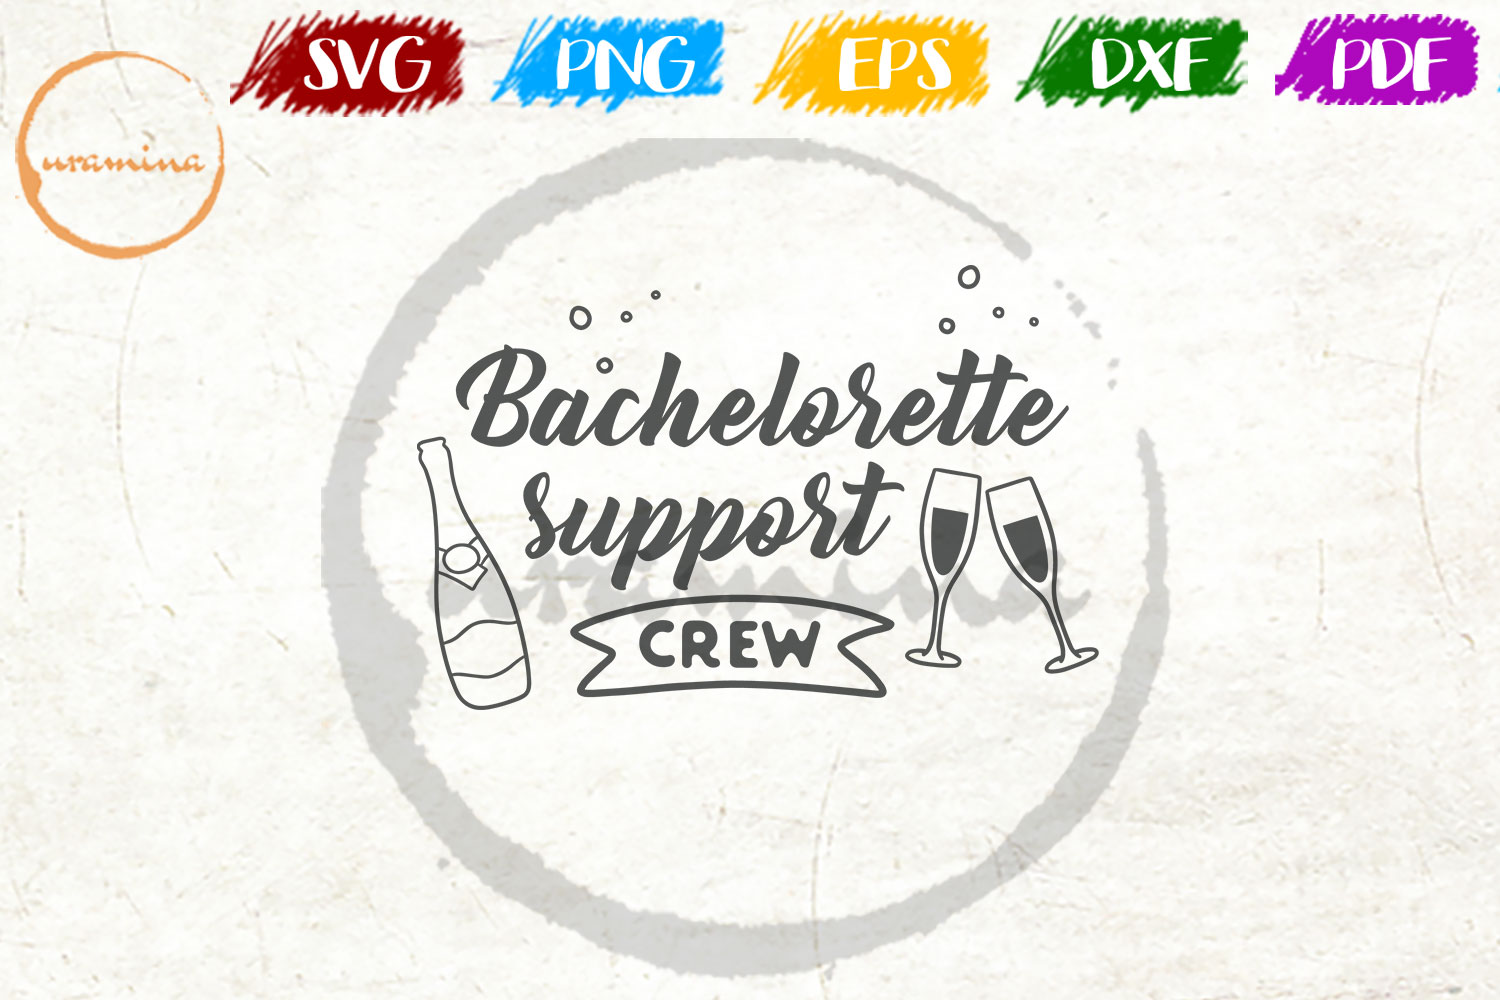 Download Free Bachelorette Support Crew Graphic By Uramina Creative Fabrica for Cricut Explore, Silhouette and other cutting machines.